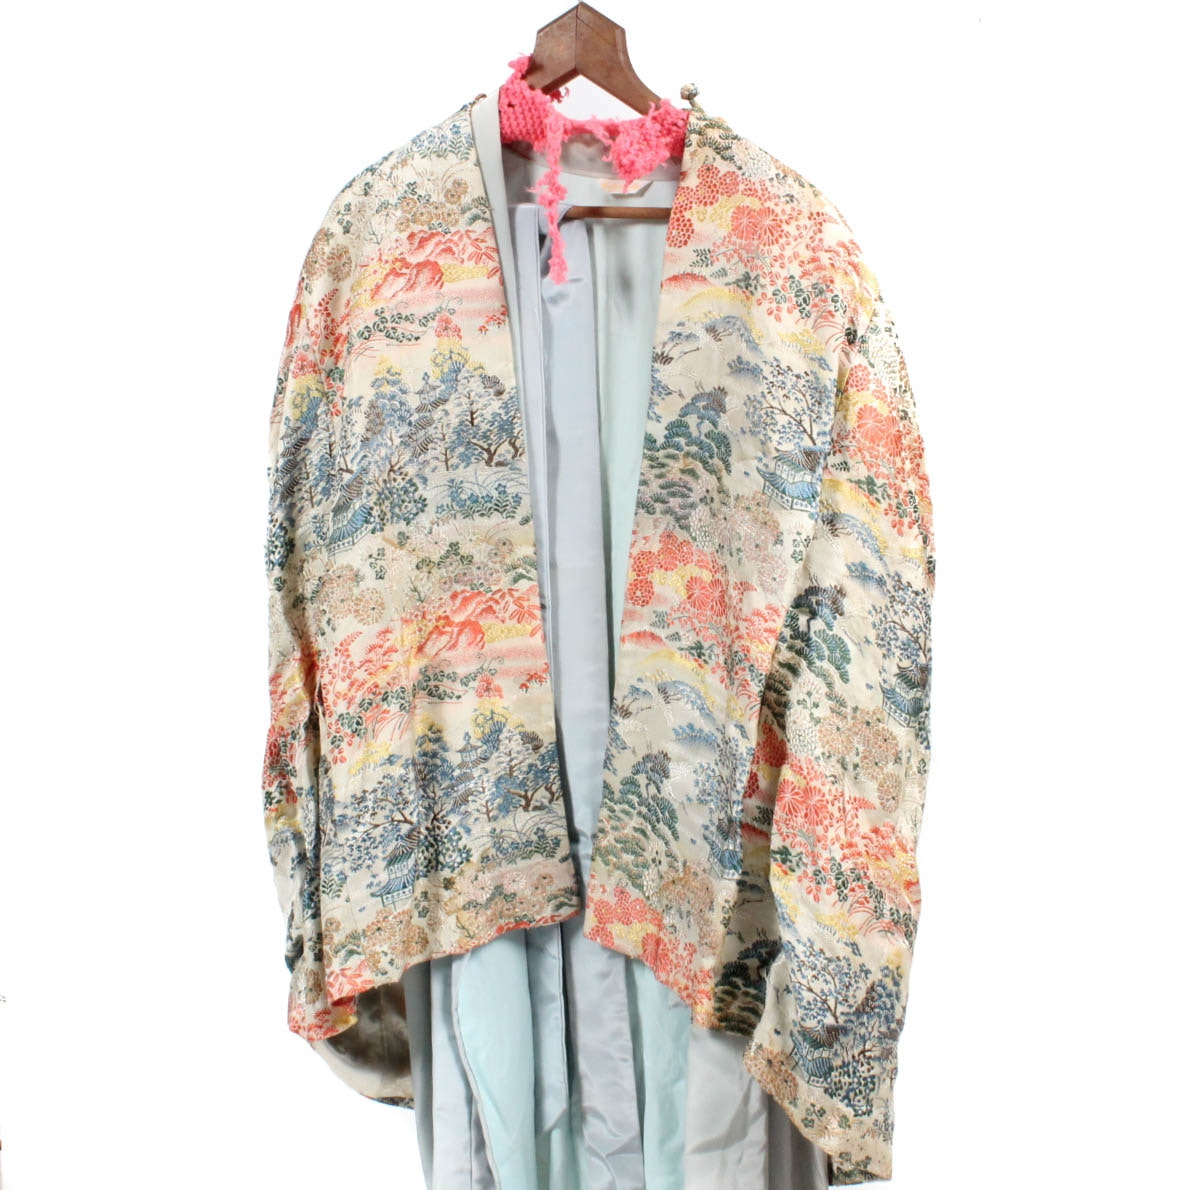 Vintage Japanese Kimono Style Robe with House Jacket